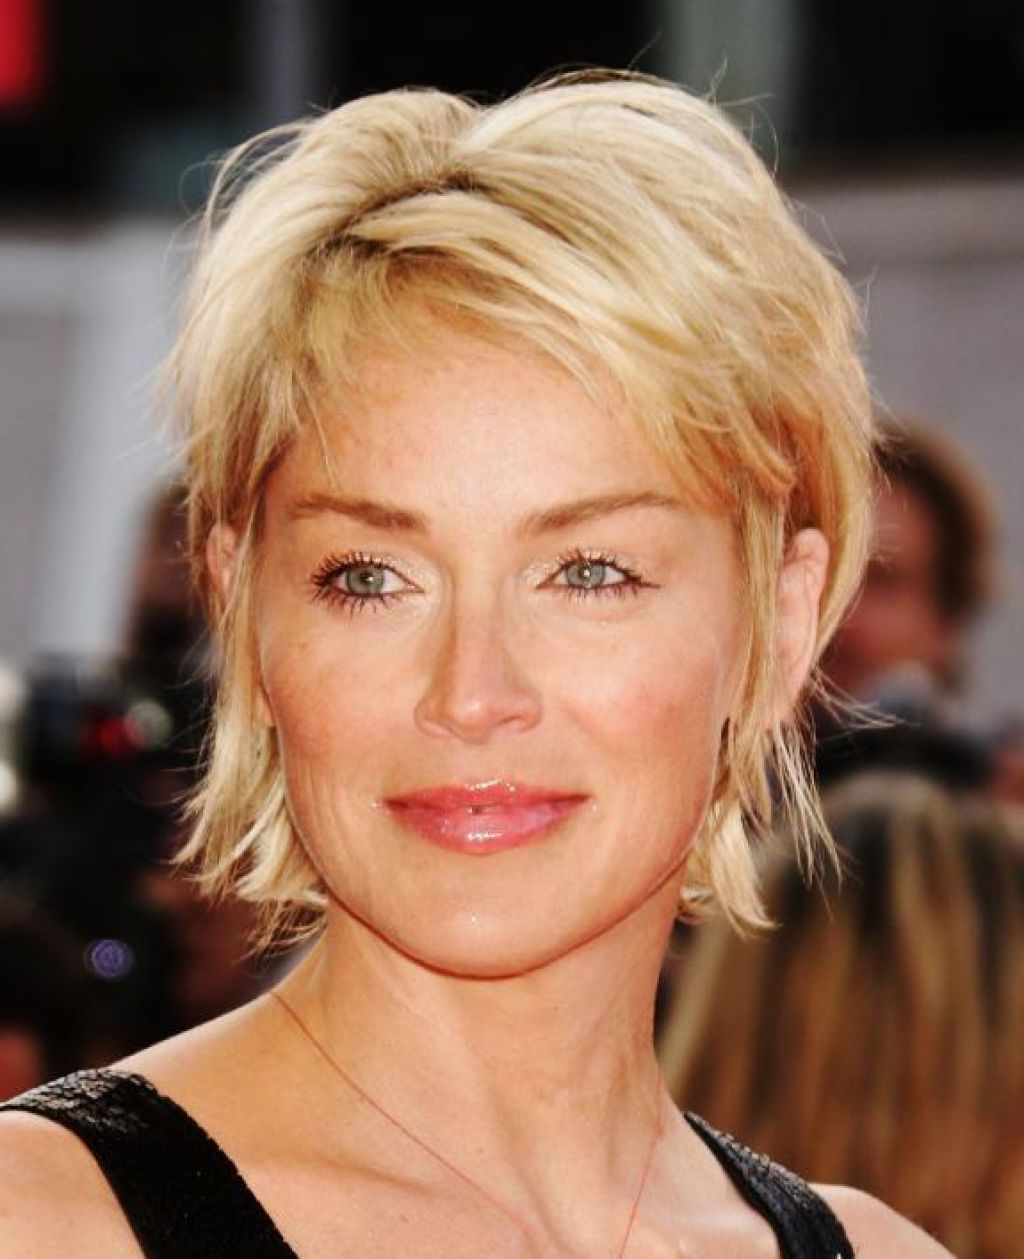 Peachy Hairstyles For Women Over 50 With Fine Hair Fave Hairstyles Short Hairstyles For Black Women Fulllsitofus